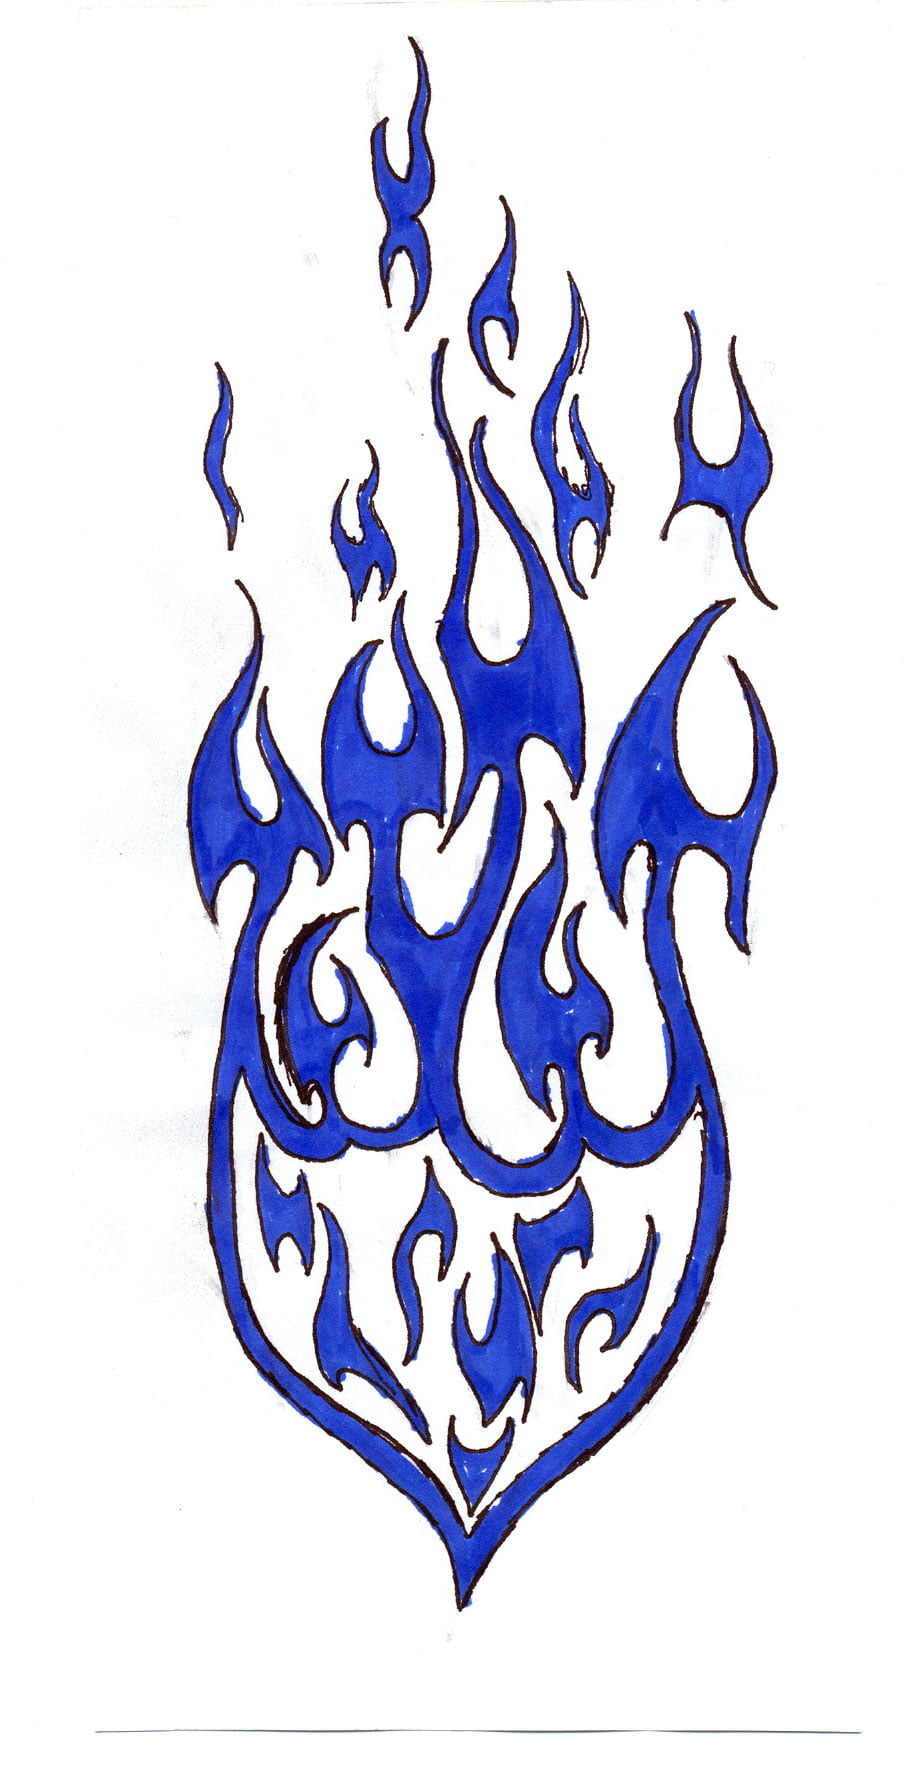 Flame Tribal Tattoo Designs